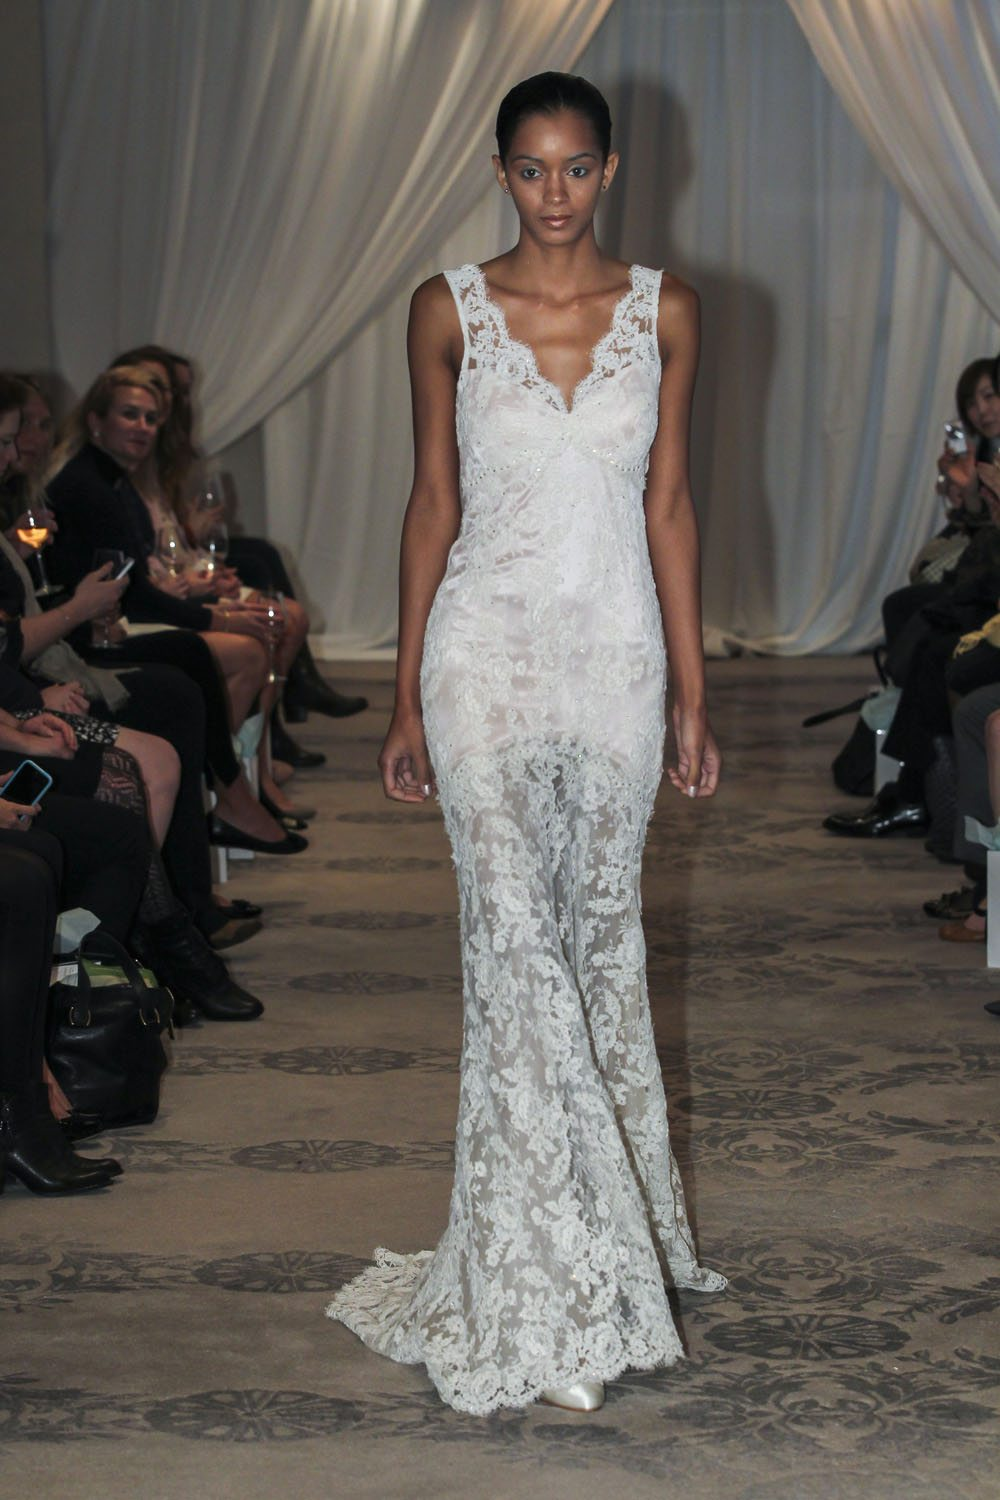 Justina McCaffrey Fall 2014 Wedding Dresses